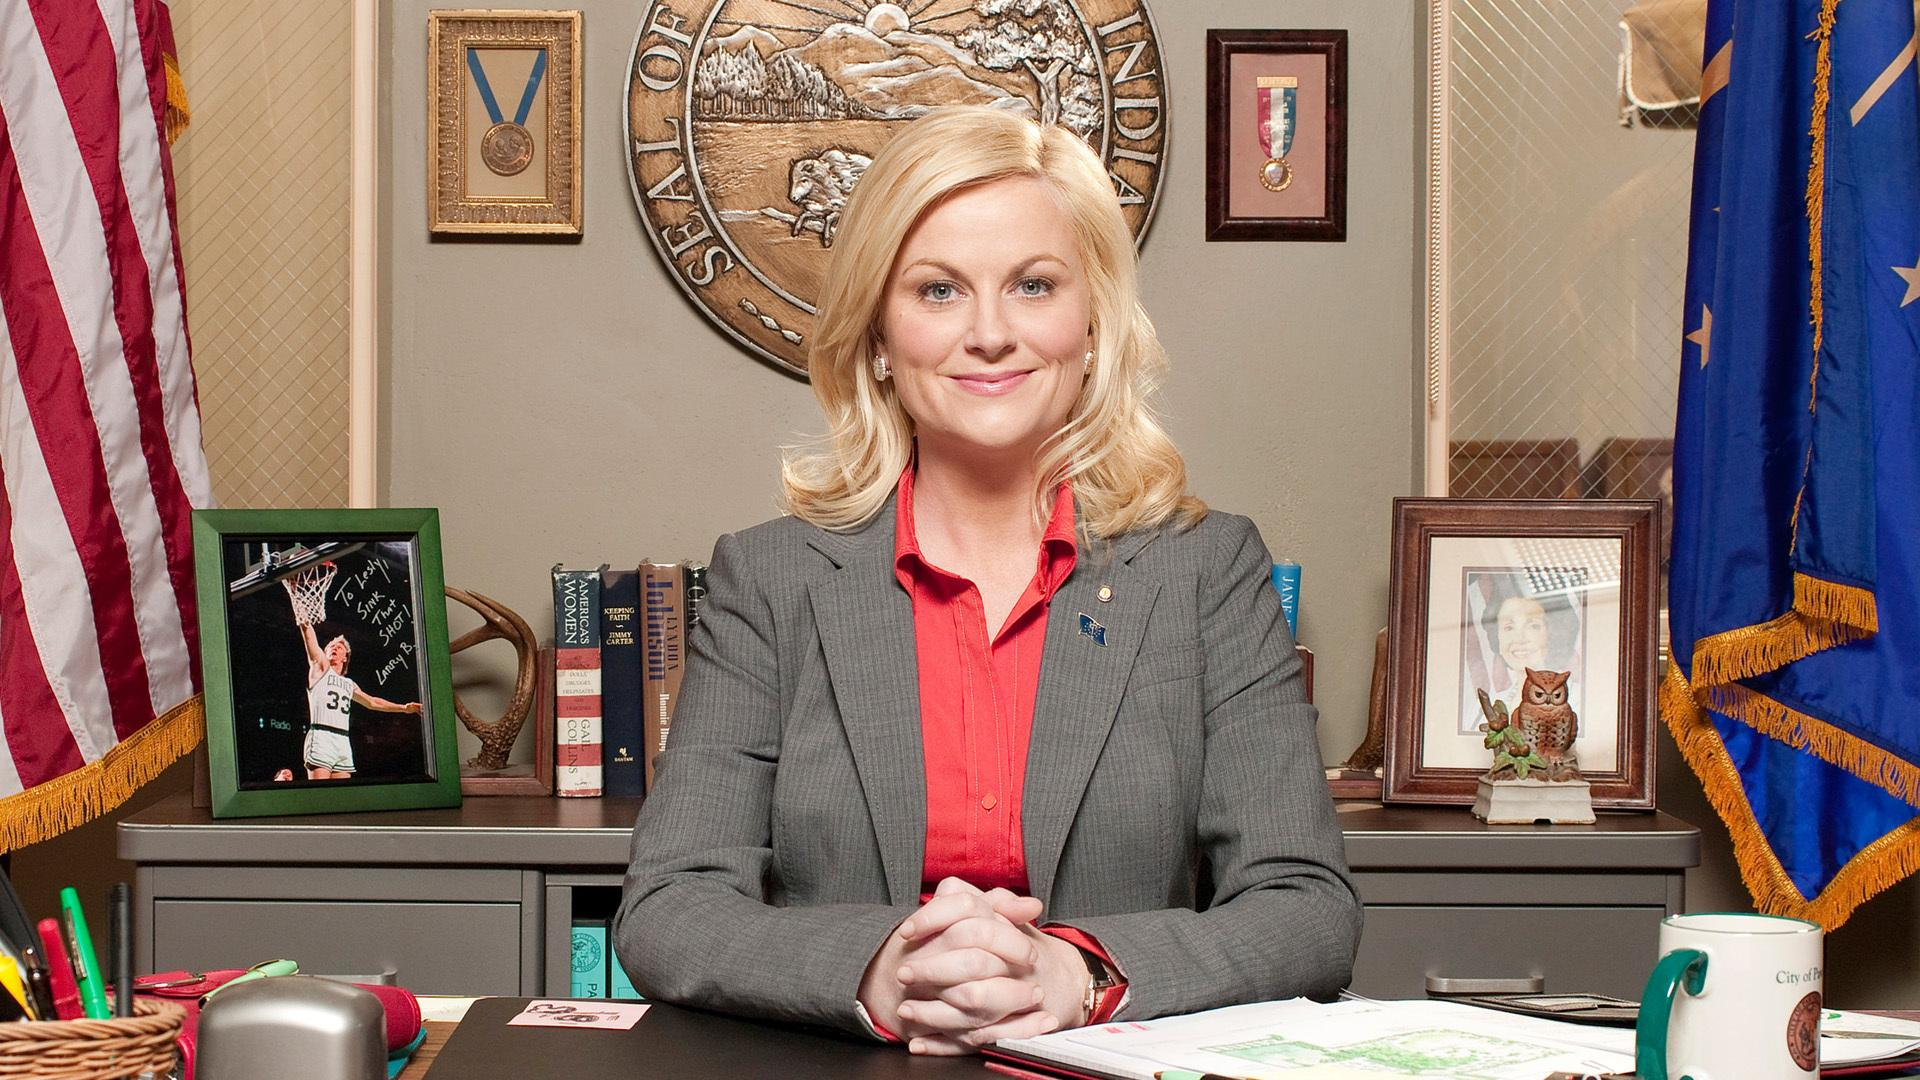 A picture of Leslie Knope from Parks and Rec